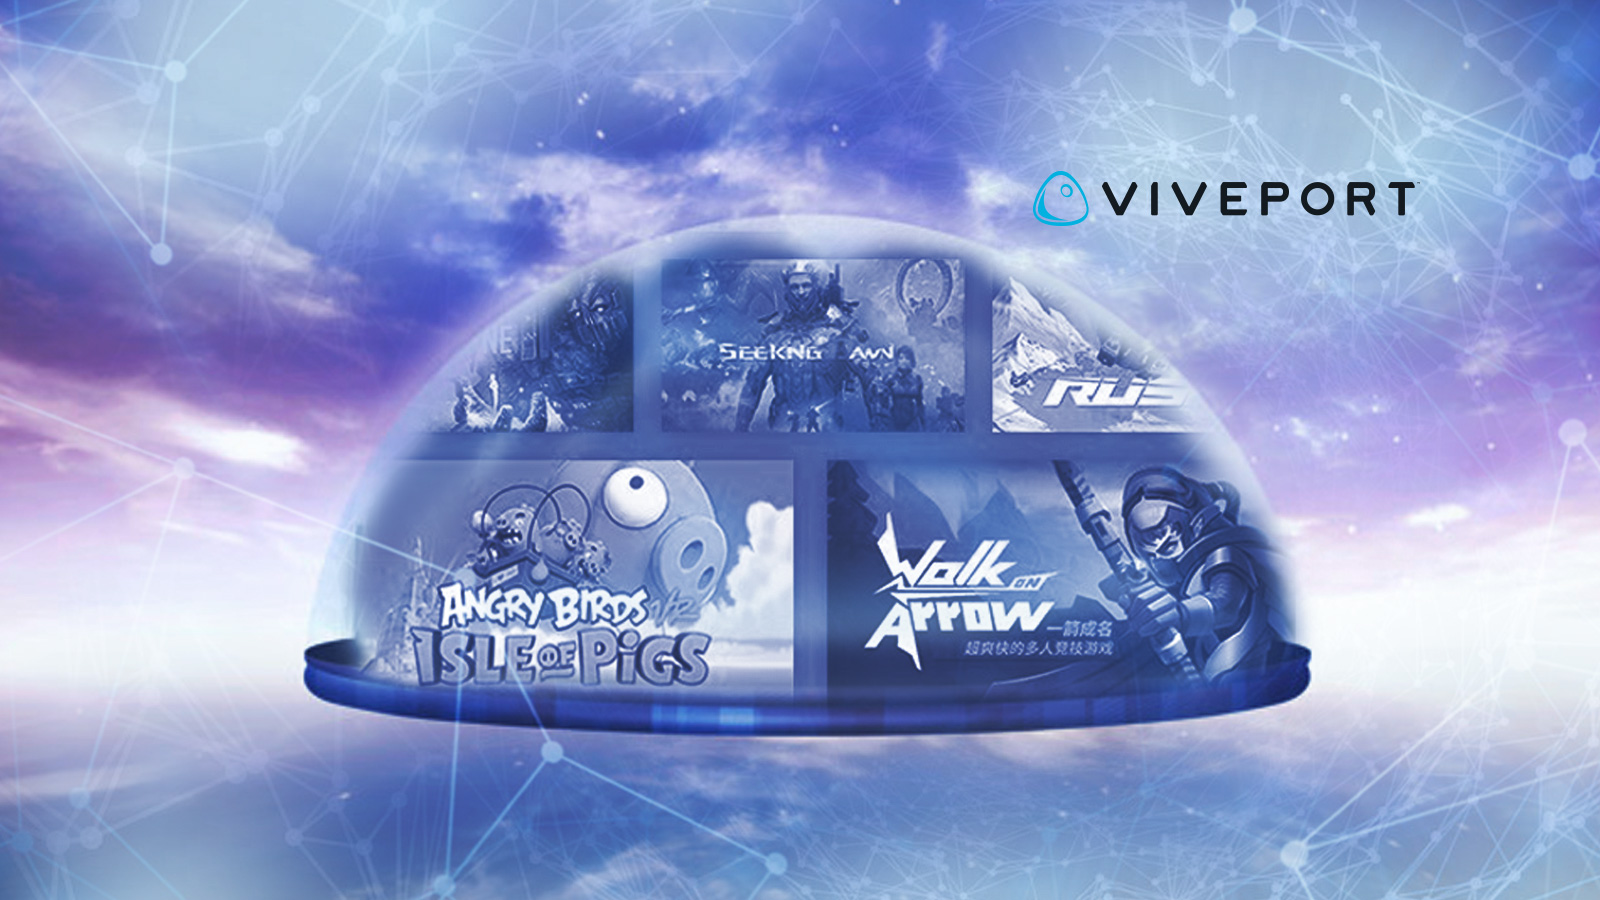 Windows Mixed Reality Headsets to Gain Viveport and Viveport